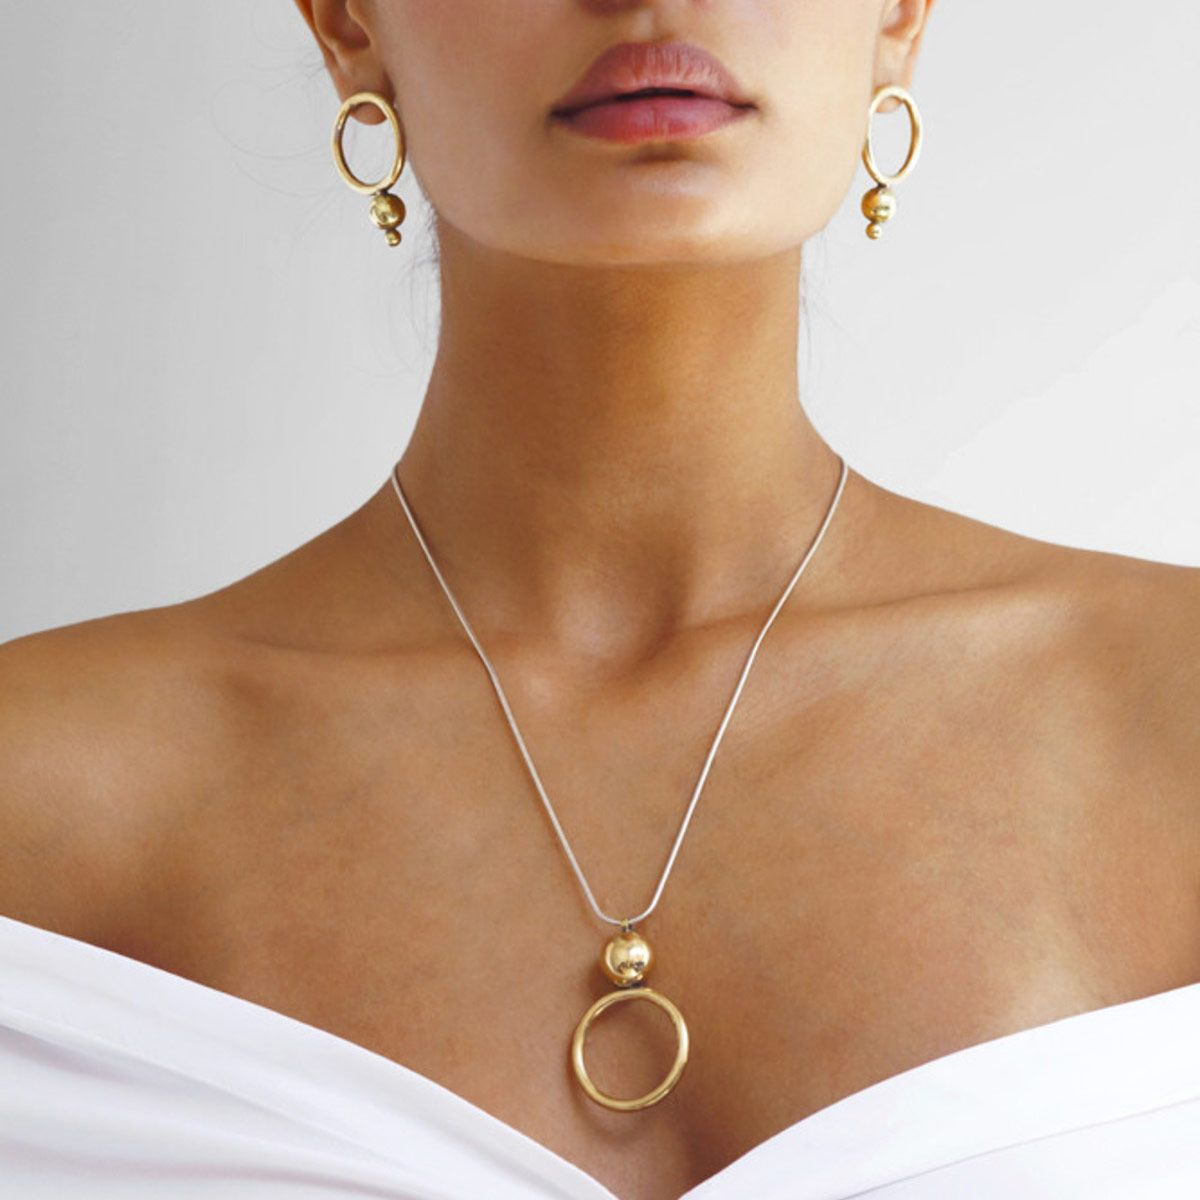 Best minimalist jewelry brands style guru fashion for New top jewelry nyc prices